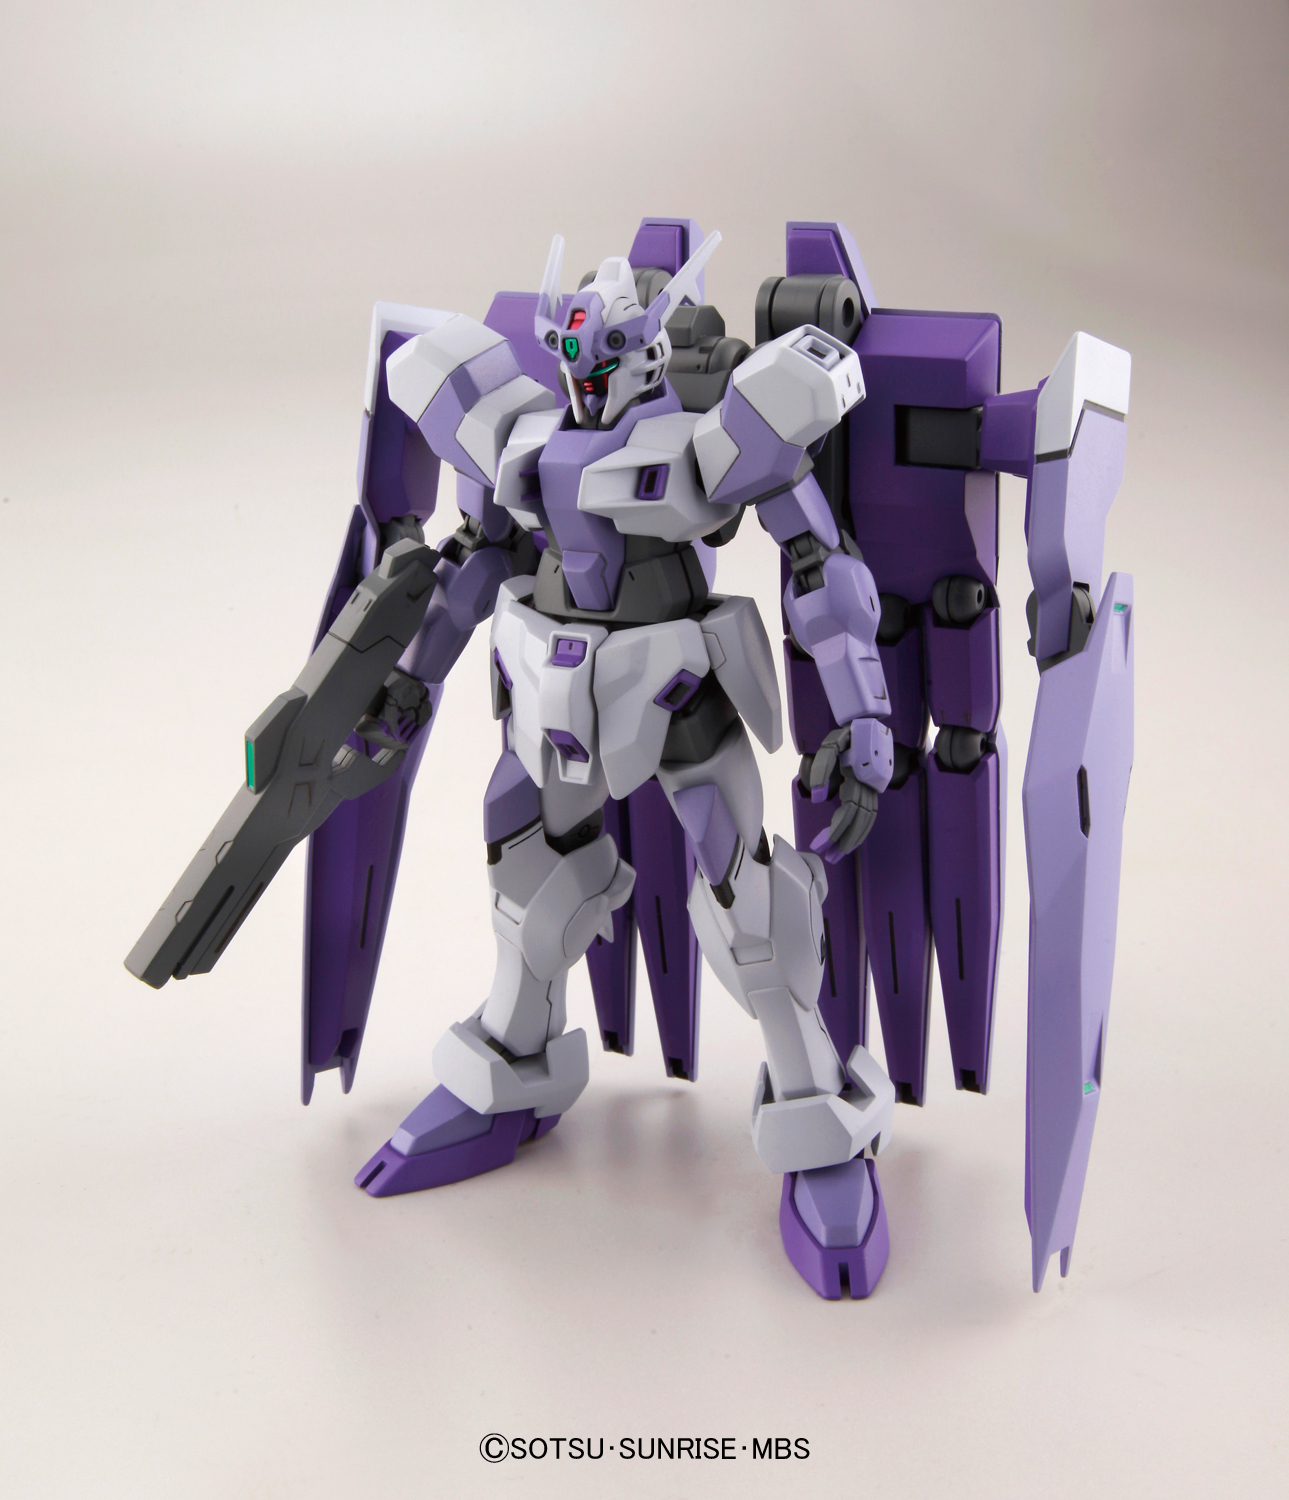 Gaeon Gundam Reconguista in G HG Model Kit 4543112948670